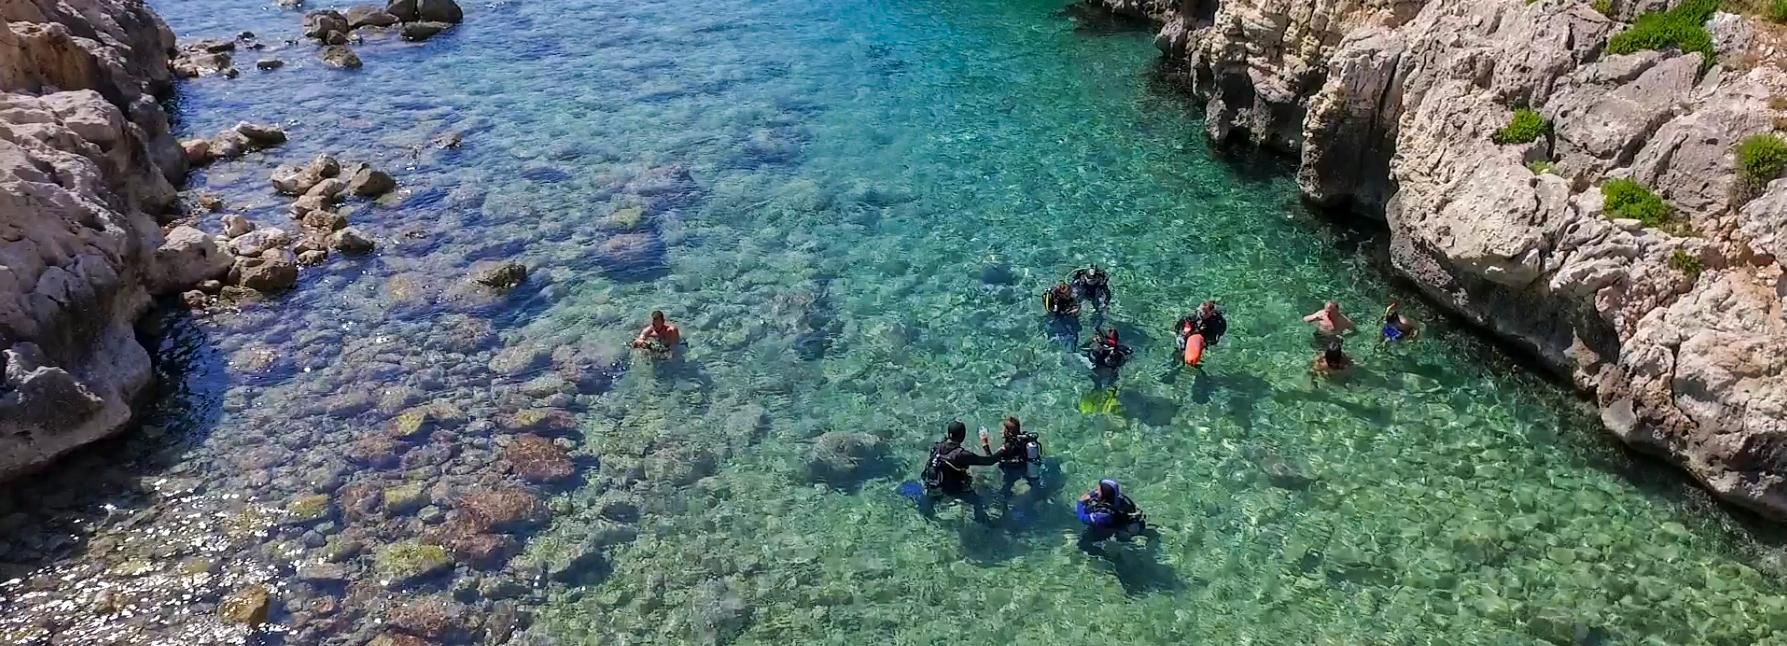 From Chania: Scuba Diving for Beginners